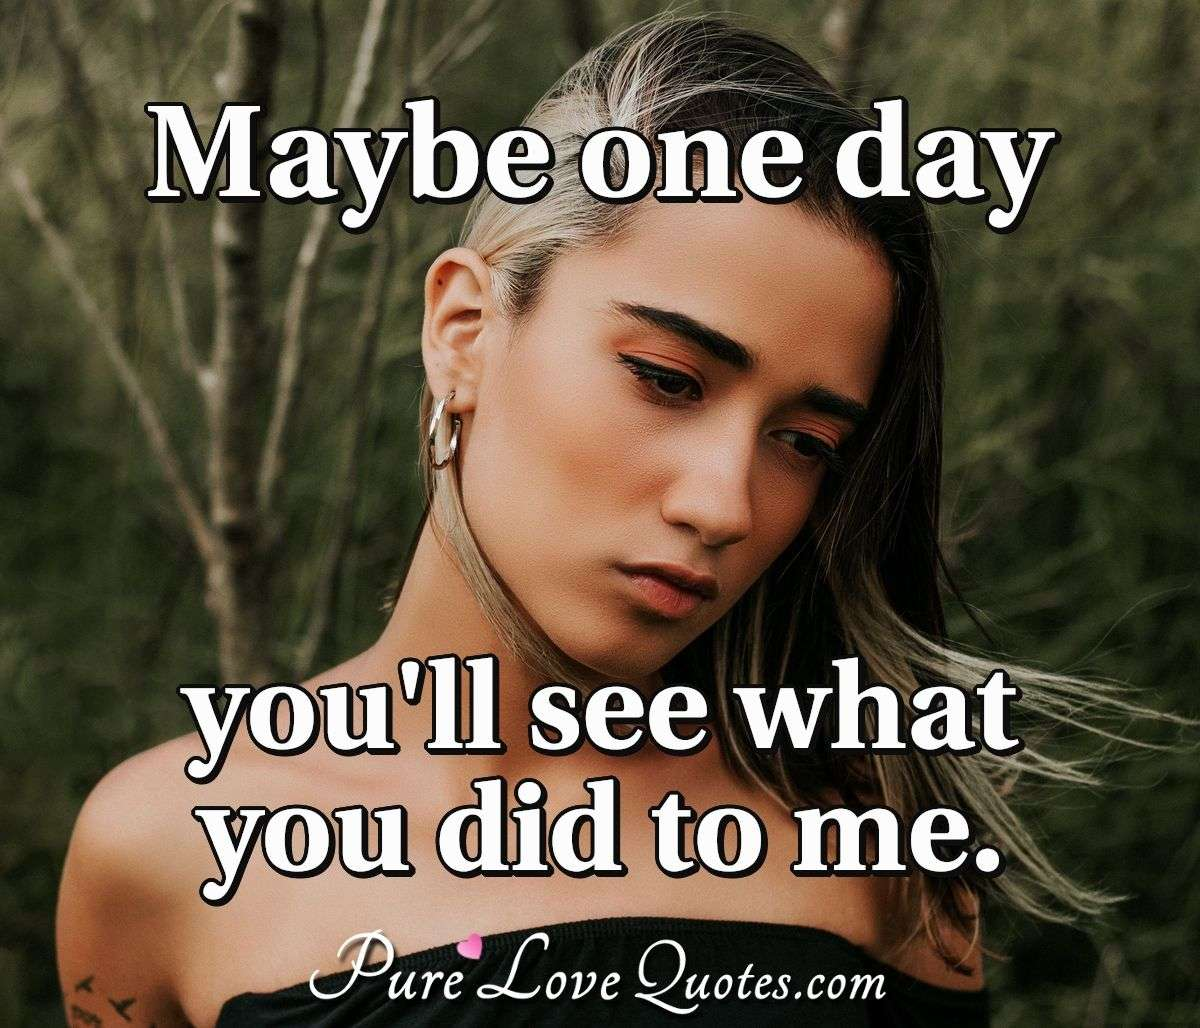 Maybe one day you'll see what you did to me. - Anonymous